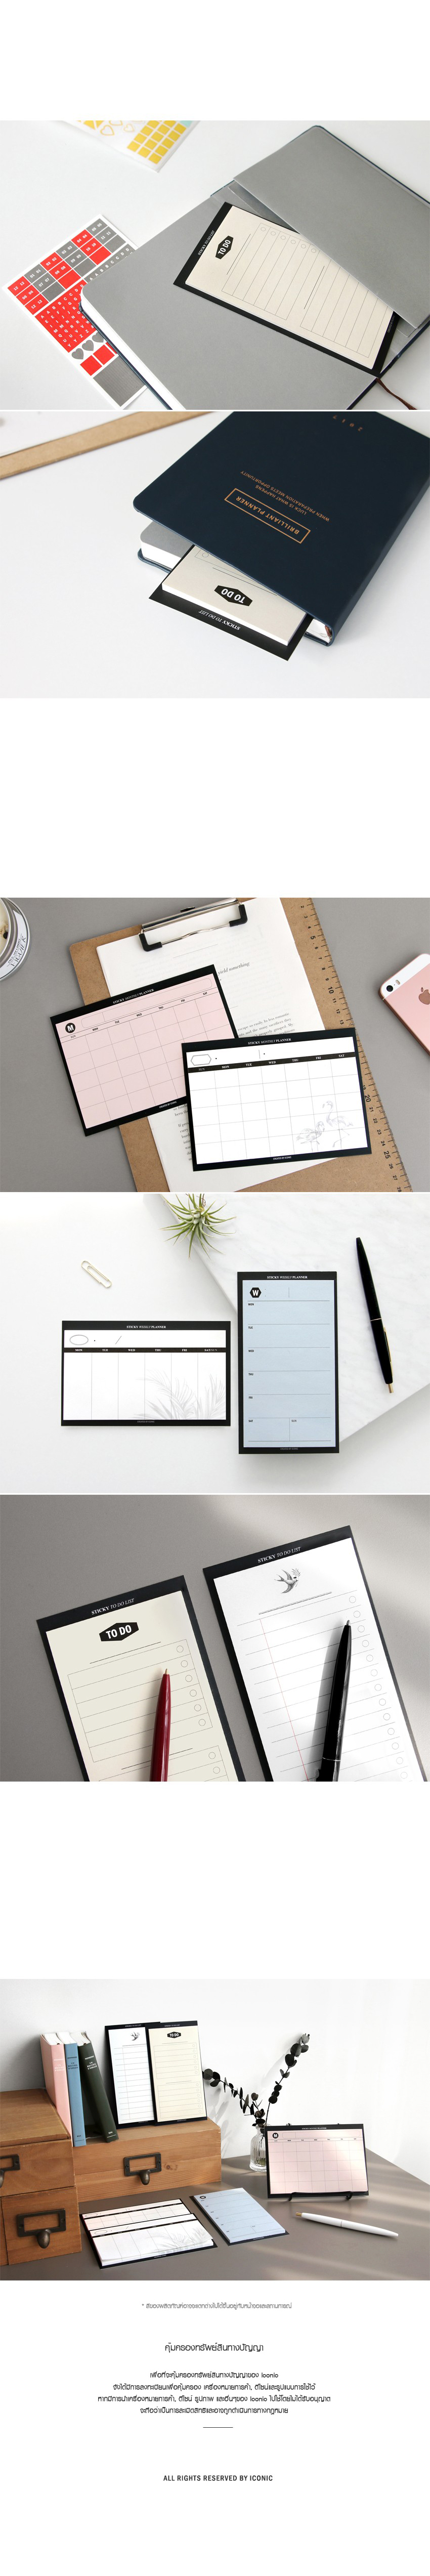 sticky-monthly-planner-5.jpg